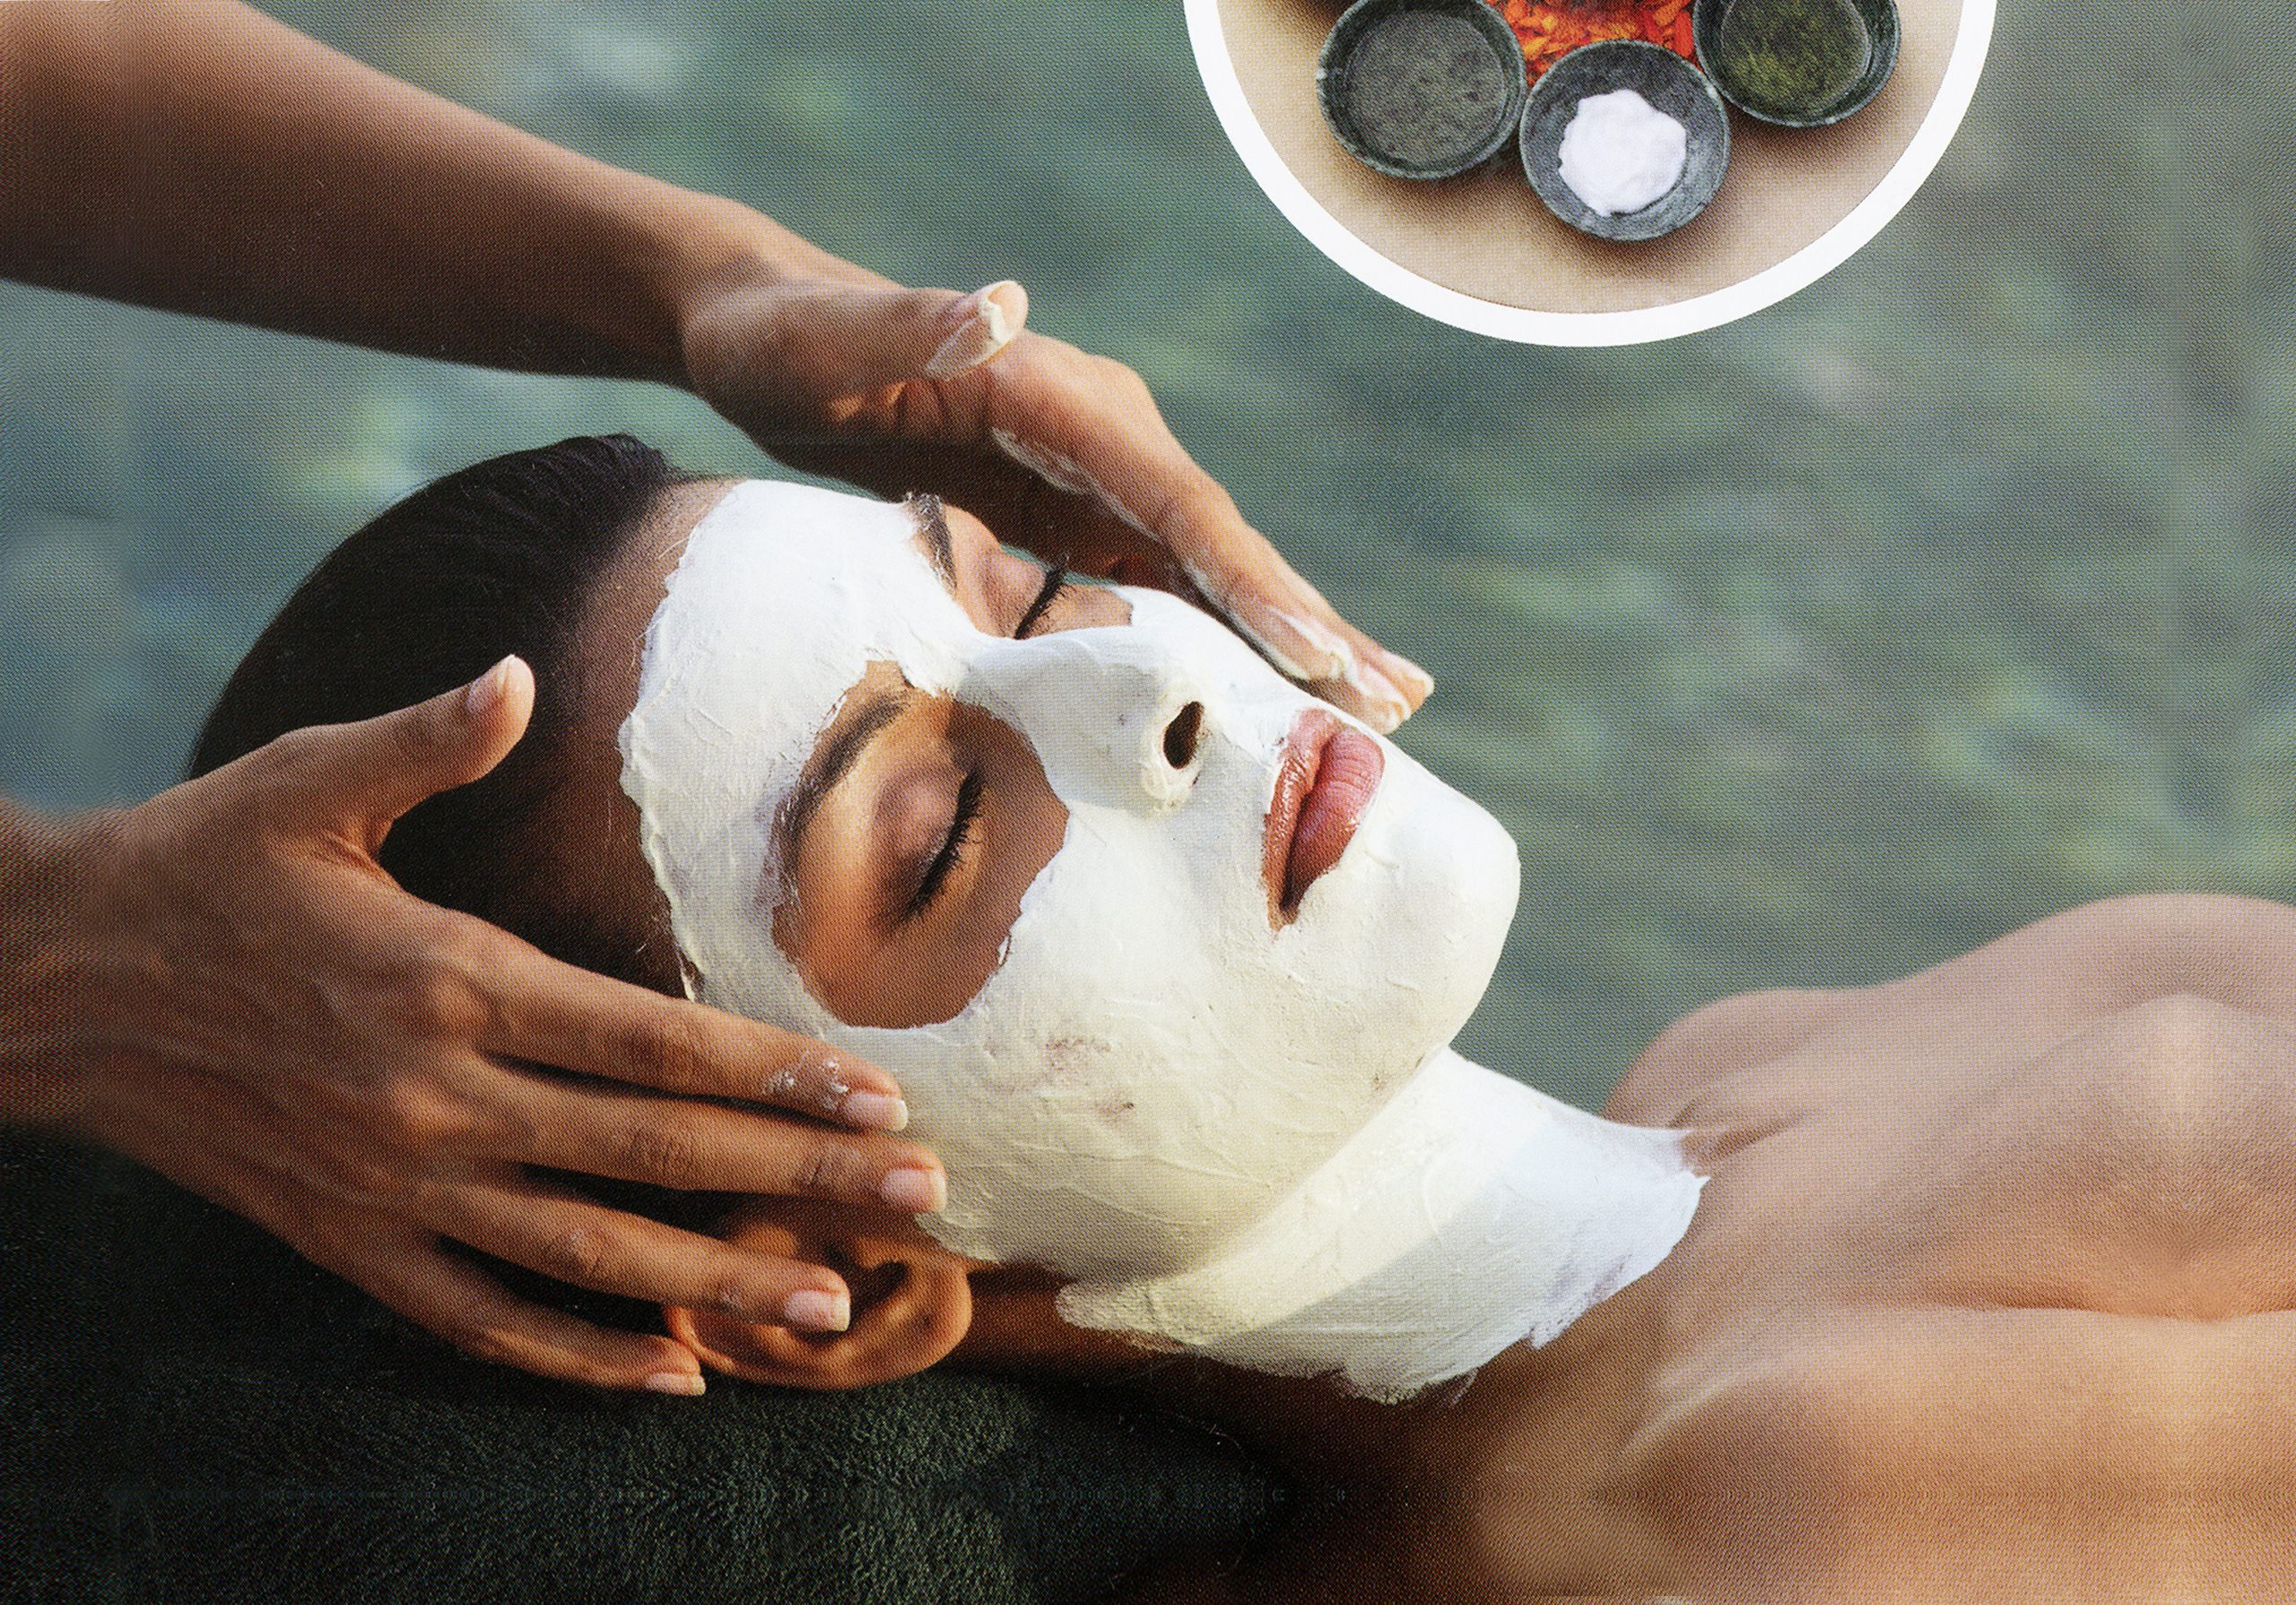 Ayurvedic Facial at Ayurvedicwellnesscentre Bondi